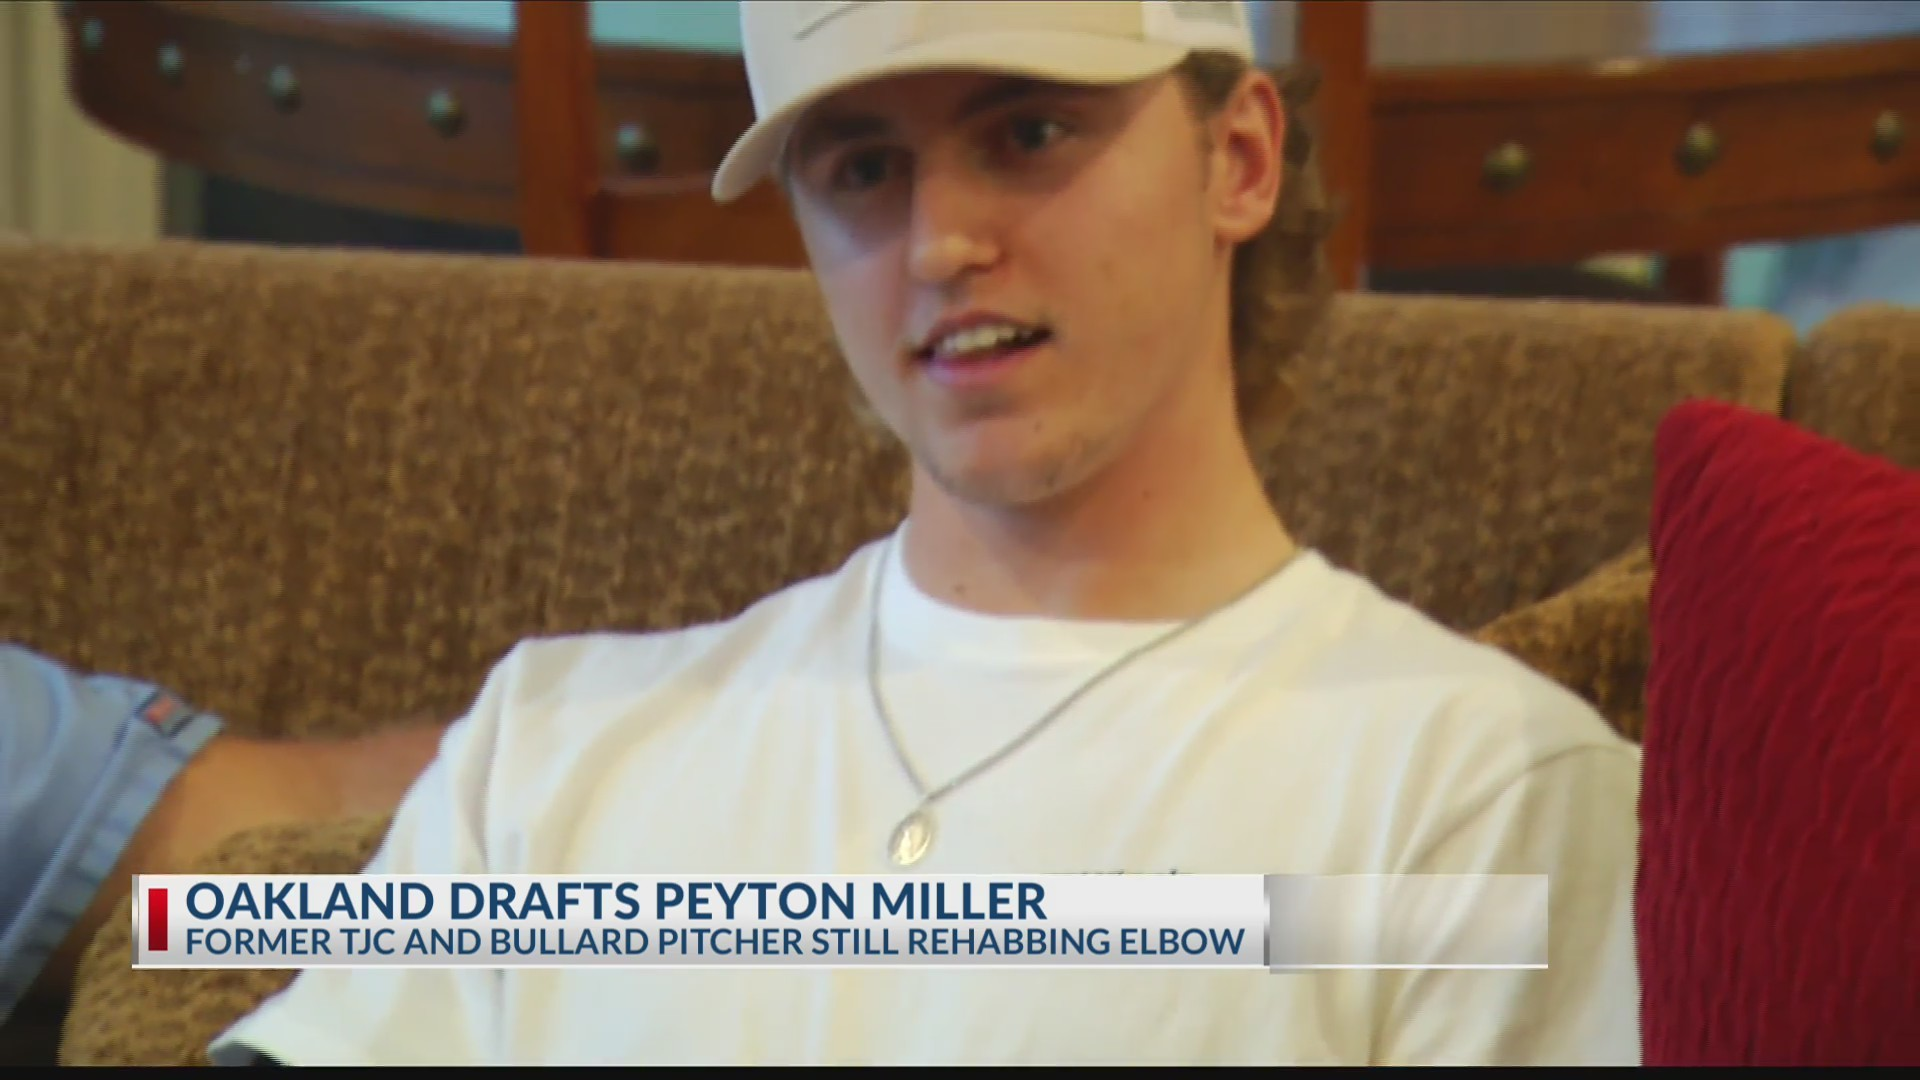 Peyton_Miller_drafted_by_Oakland_Athleti_0_20190606034656